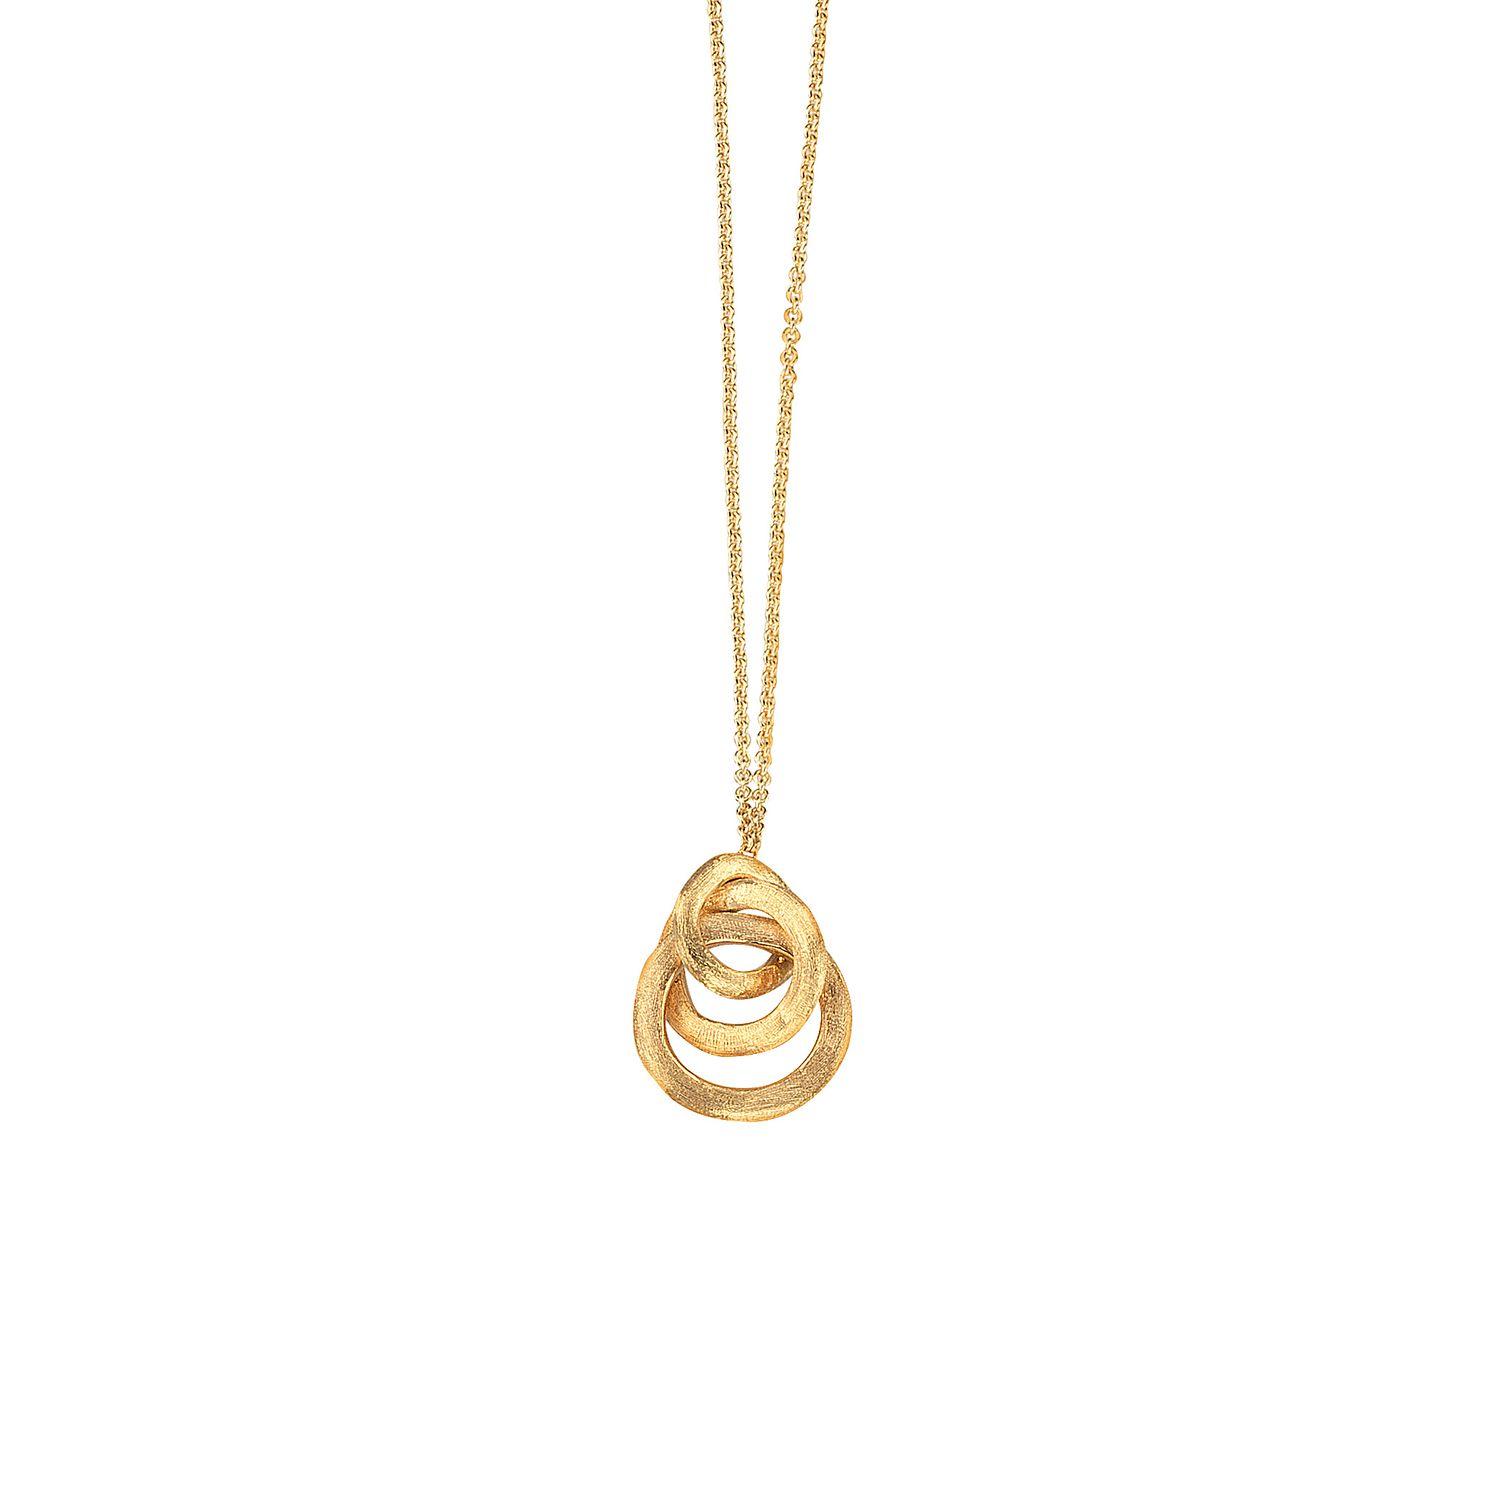 Marco Bicego 18ct Yellow Gold Pendant - Product number 9096051